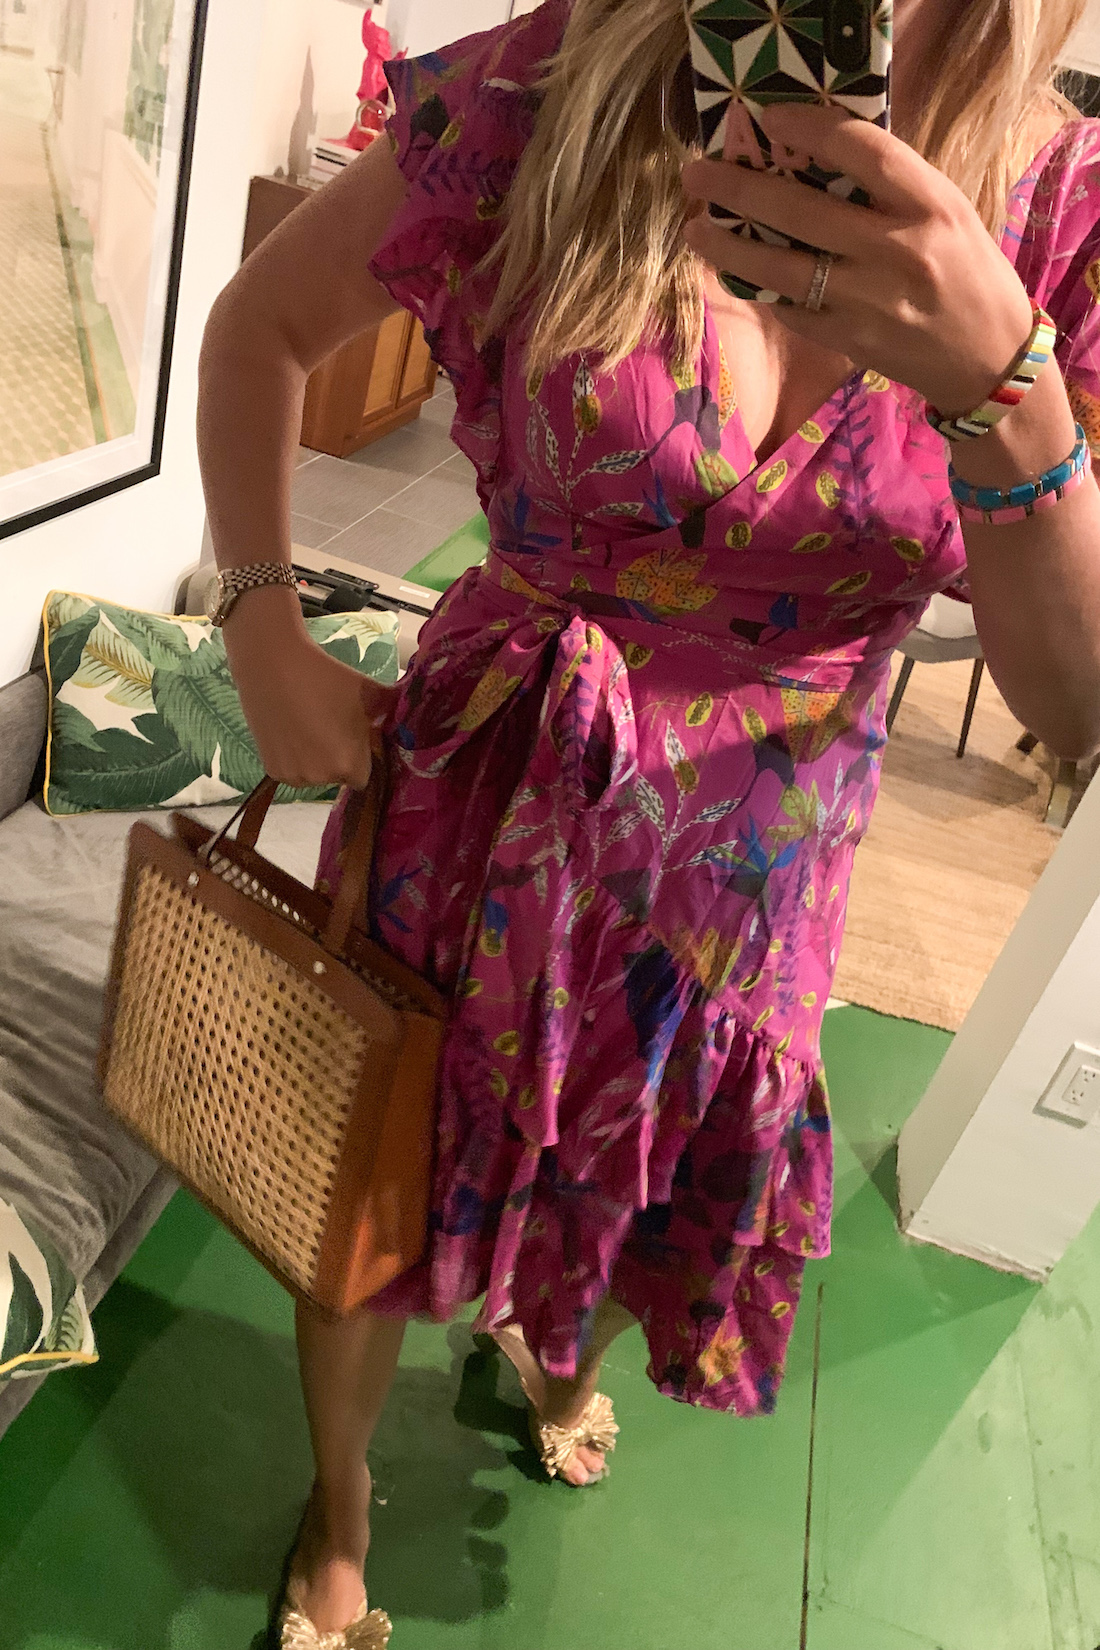 Grace actually wore this pink dress with a structured bag